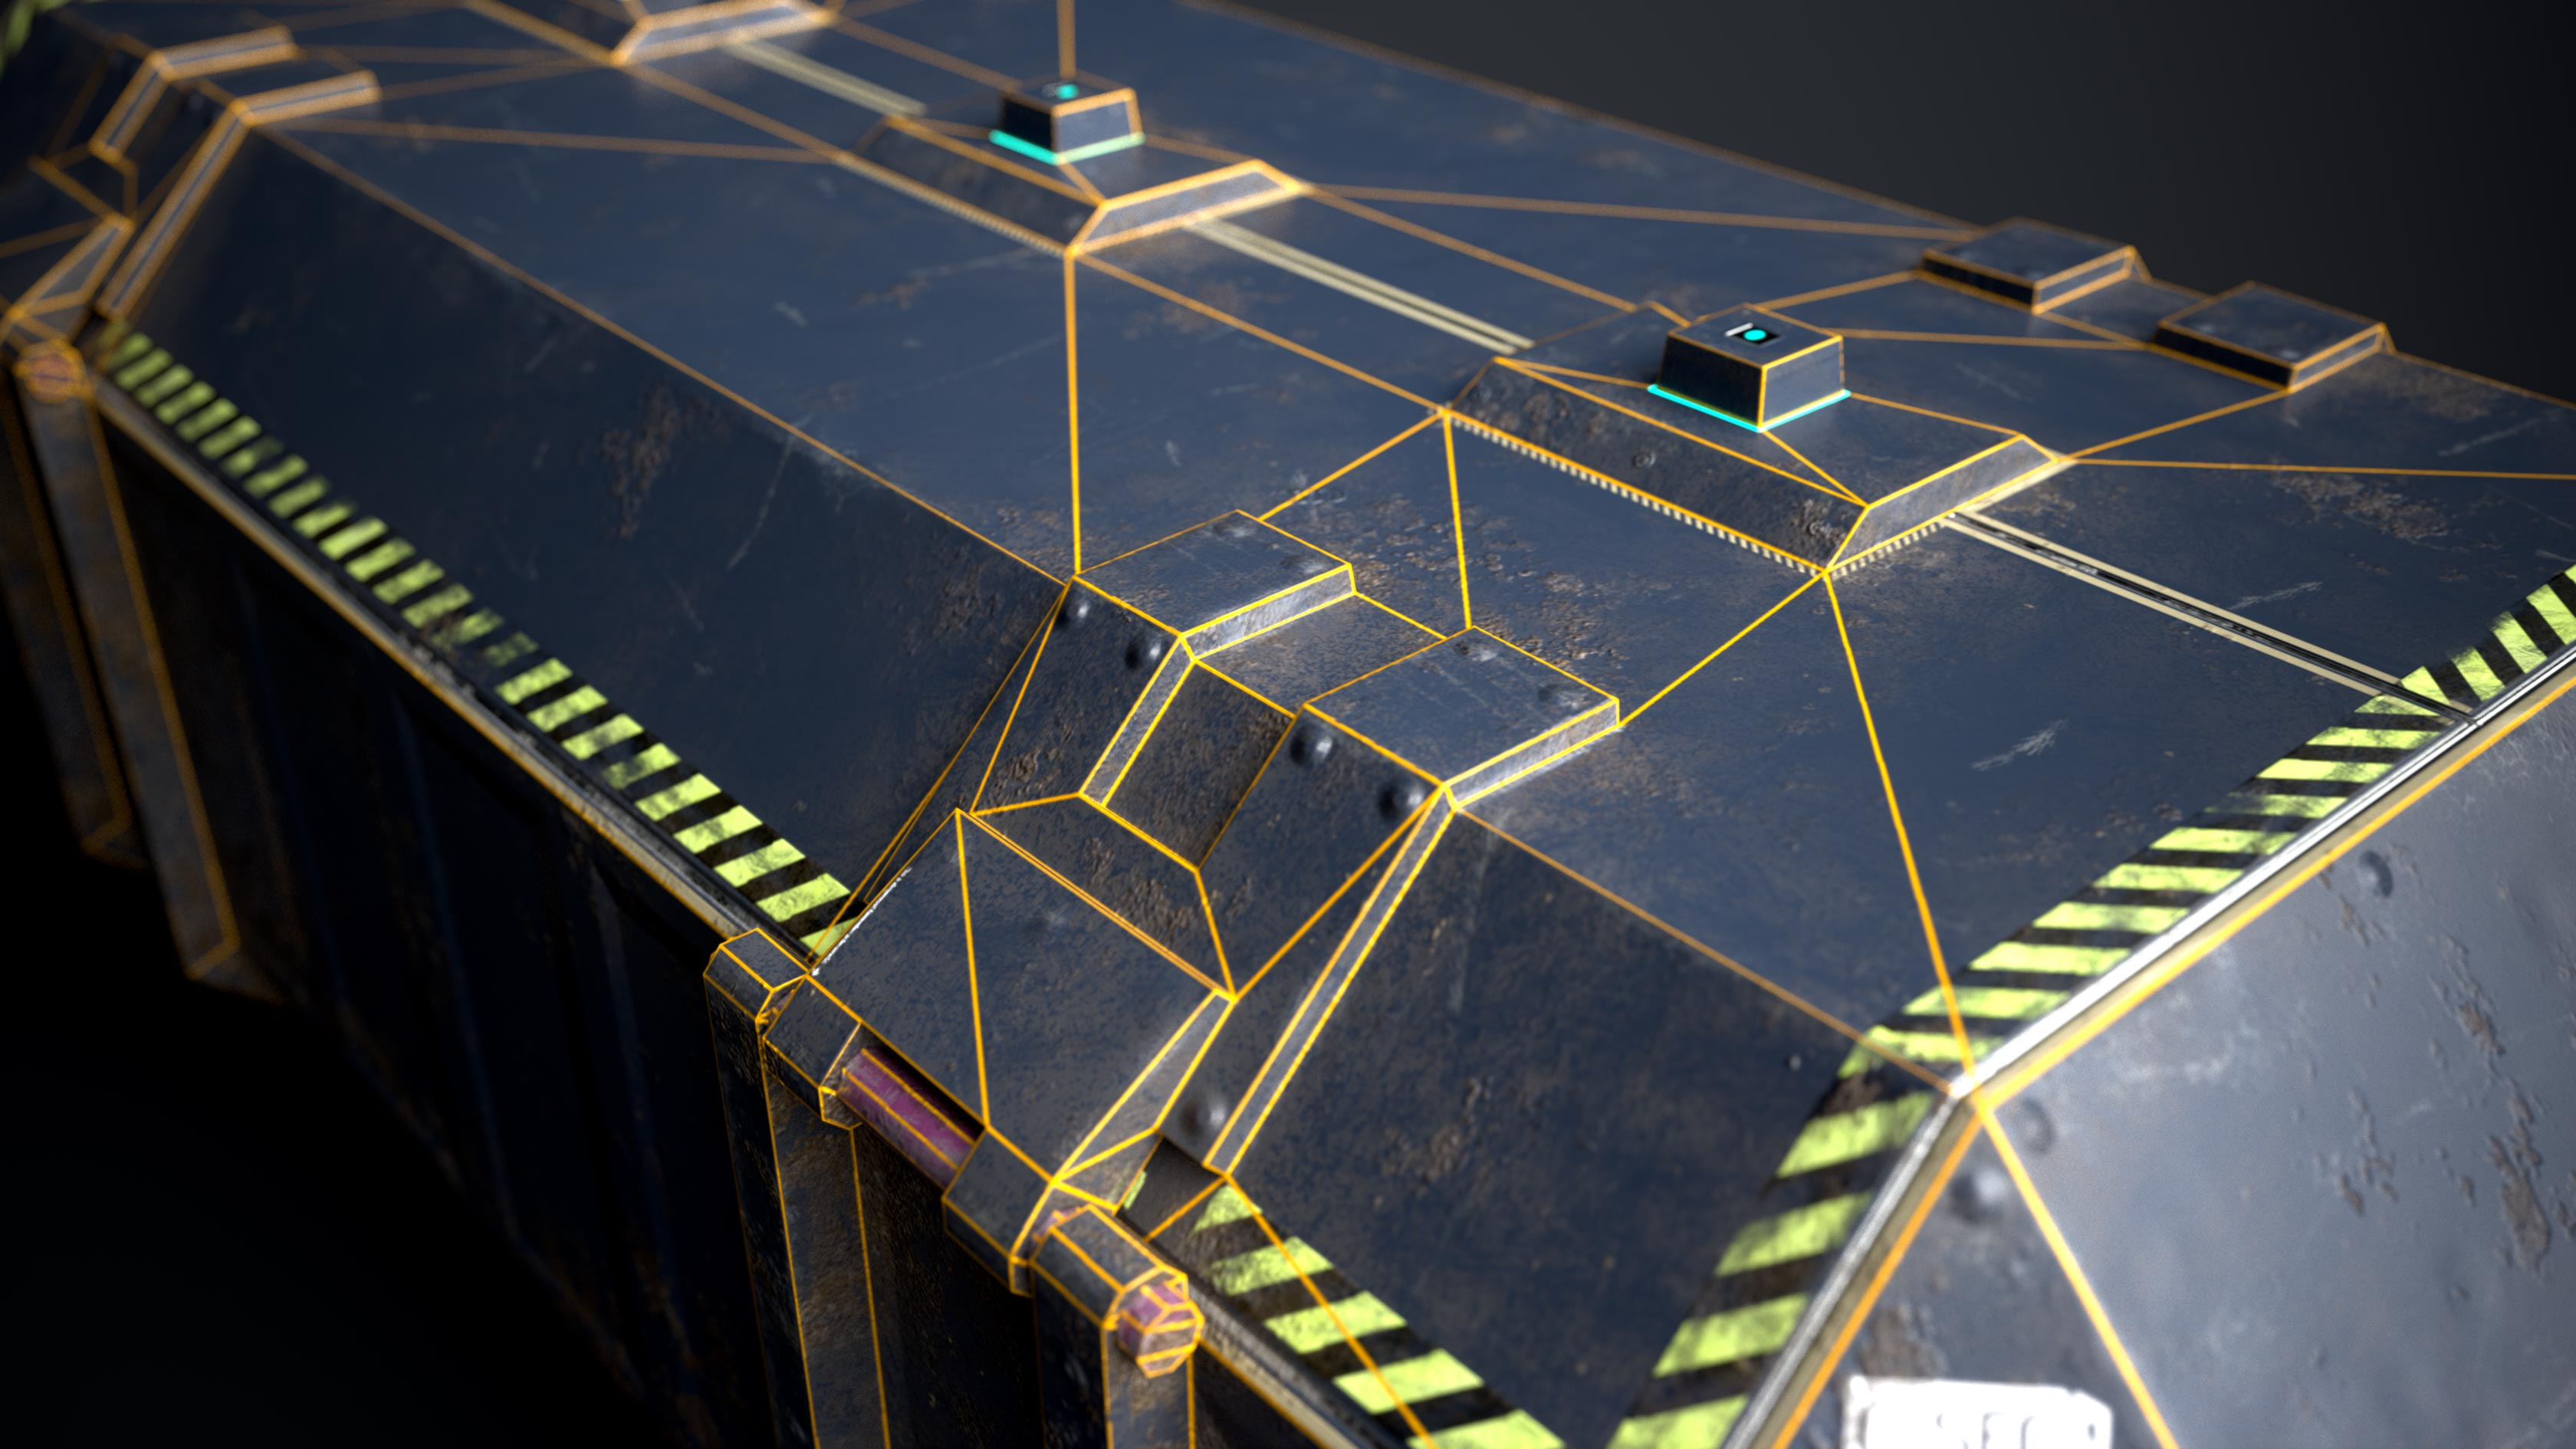 This is a blue 3D game sci fi crate or container that is sturdy but beaten and dirty. The rendering shows a close up of the sci fi box with its wireframe, polyflow or polygon flow visible.